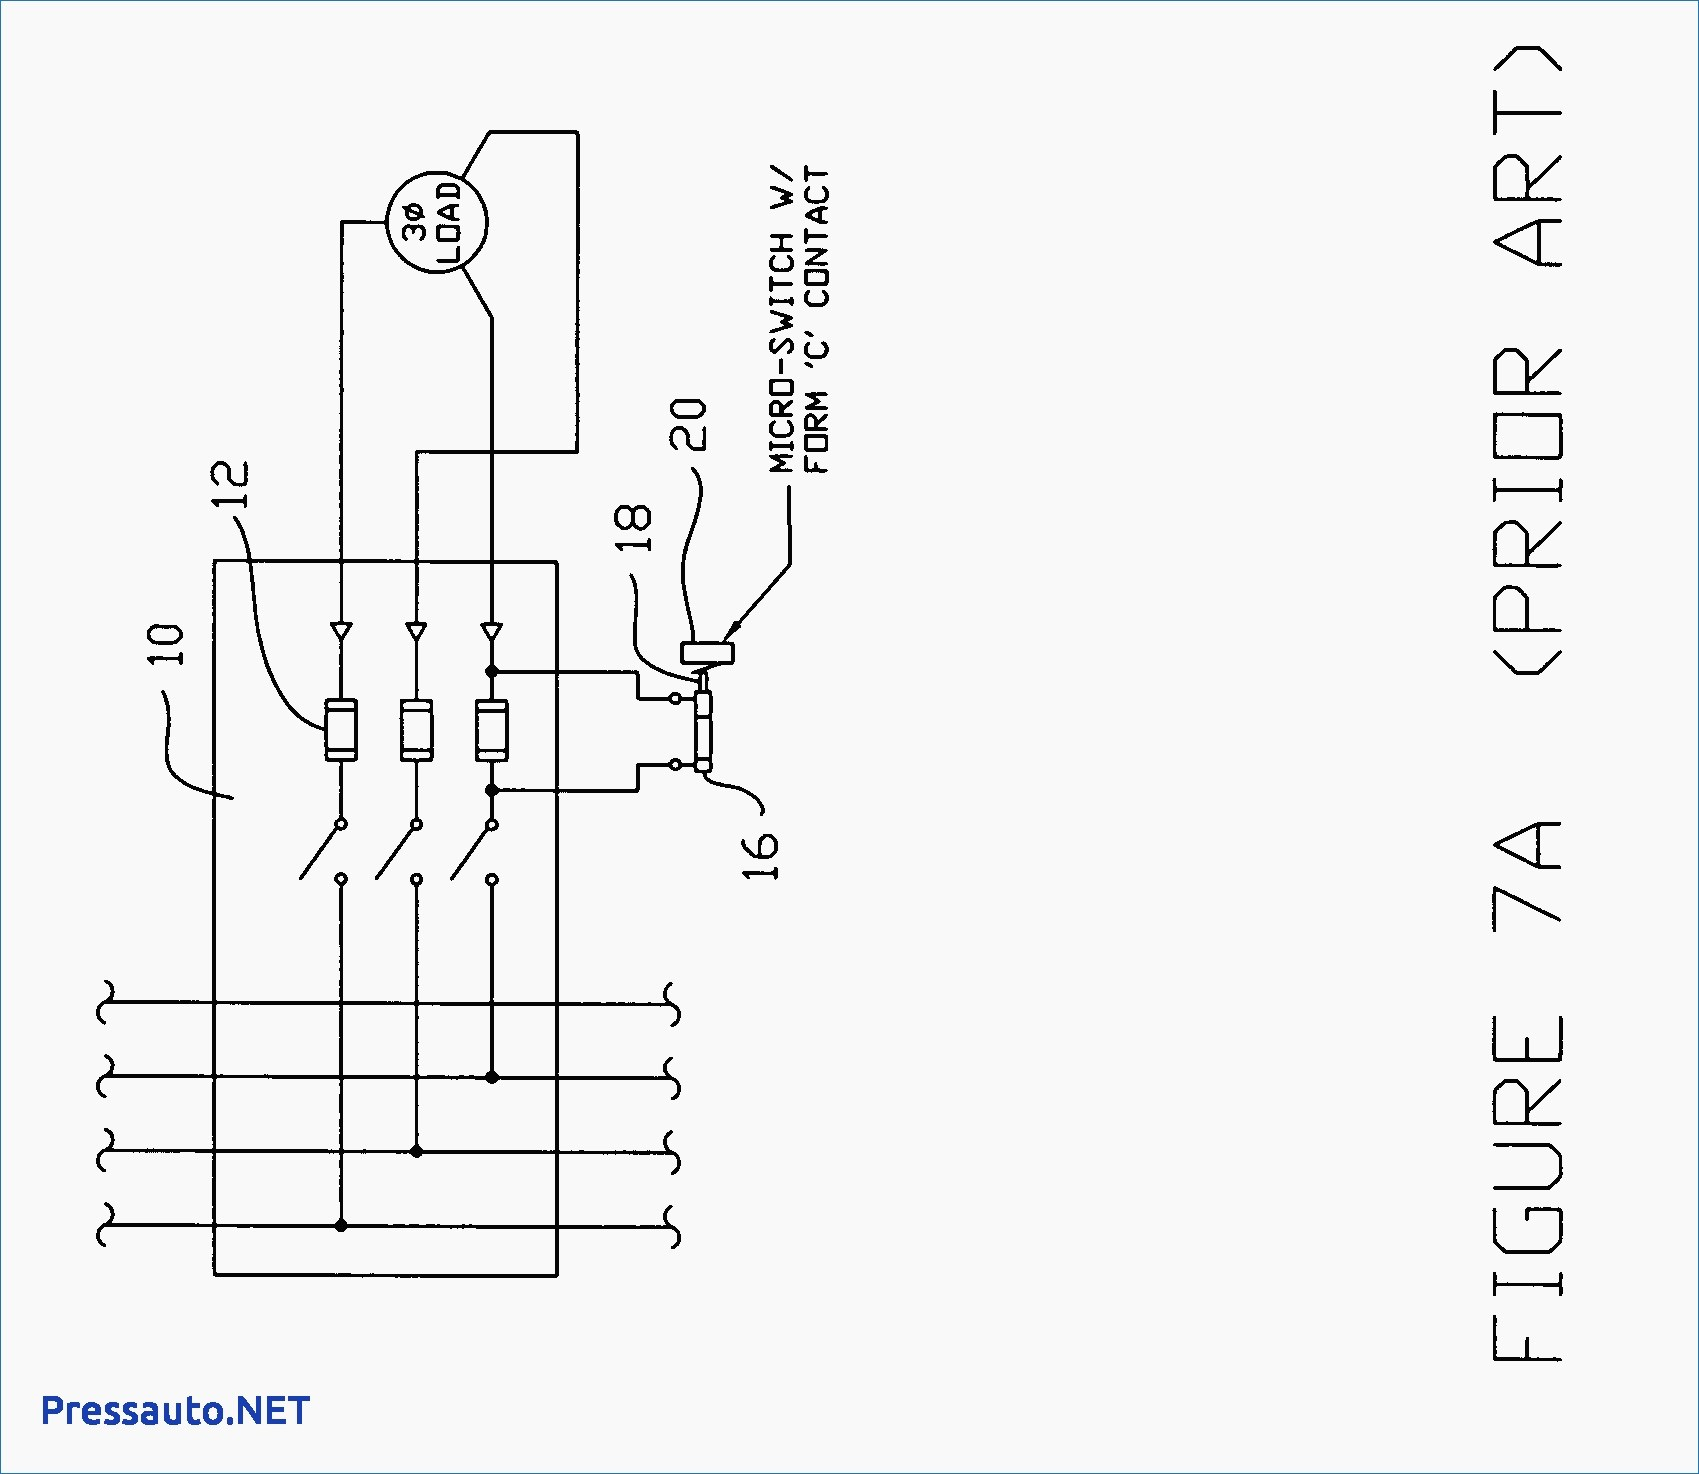 find out here cutler hammer shunt trip breaker wiring diagram download